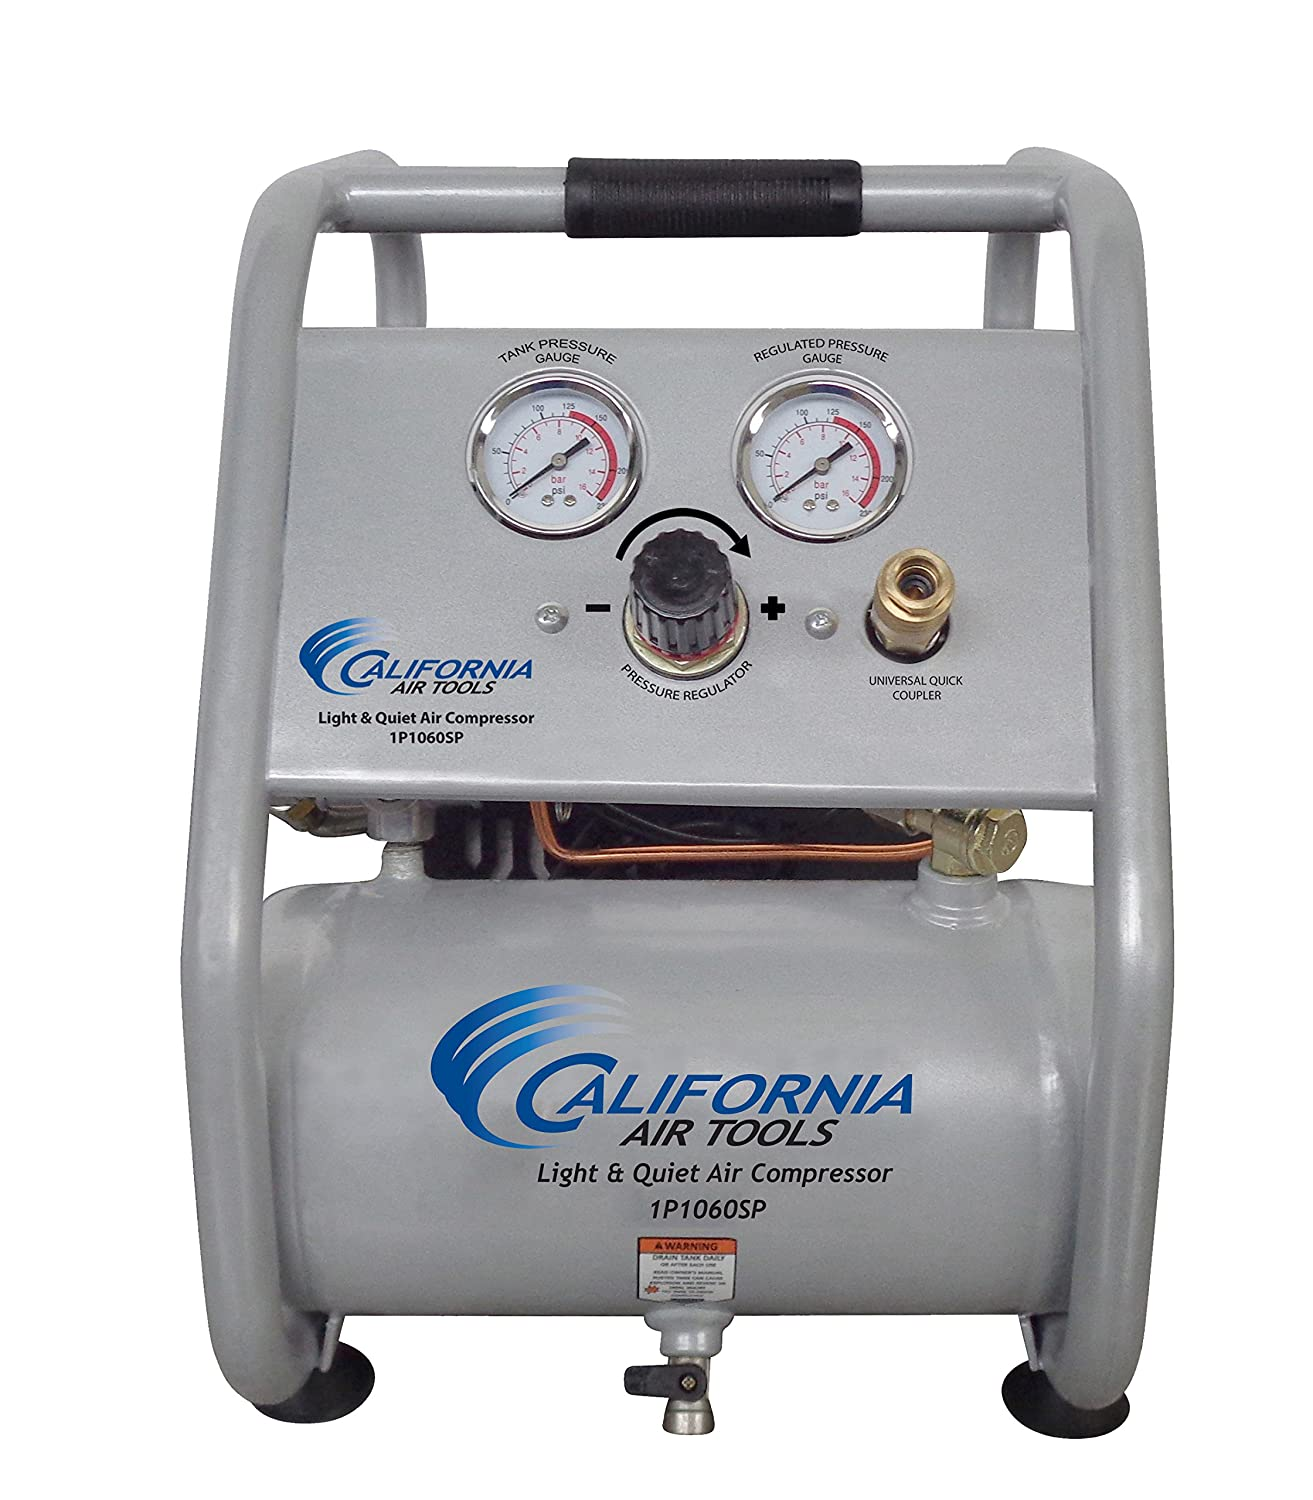 California Air Tools 1.0 Gal. Light and Quiet Steel Tank Electric Portable Air Compressor with Panel CAT-1P1060SP